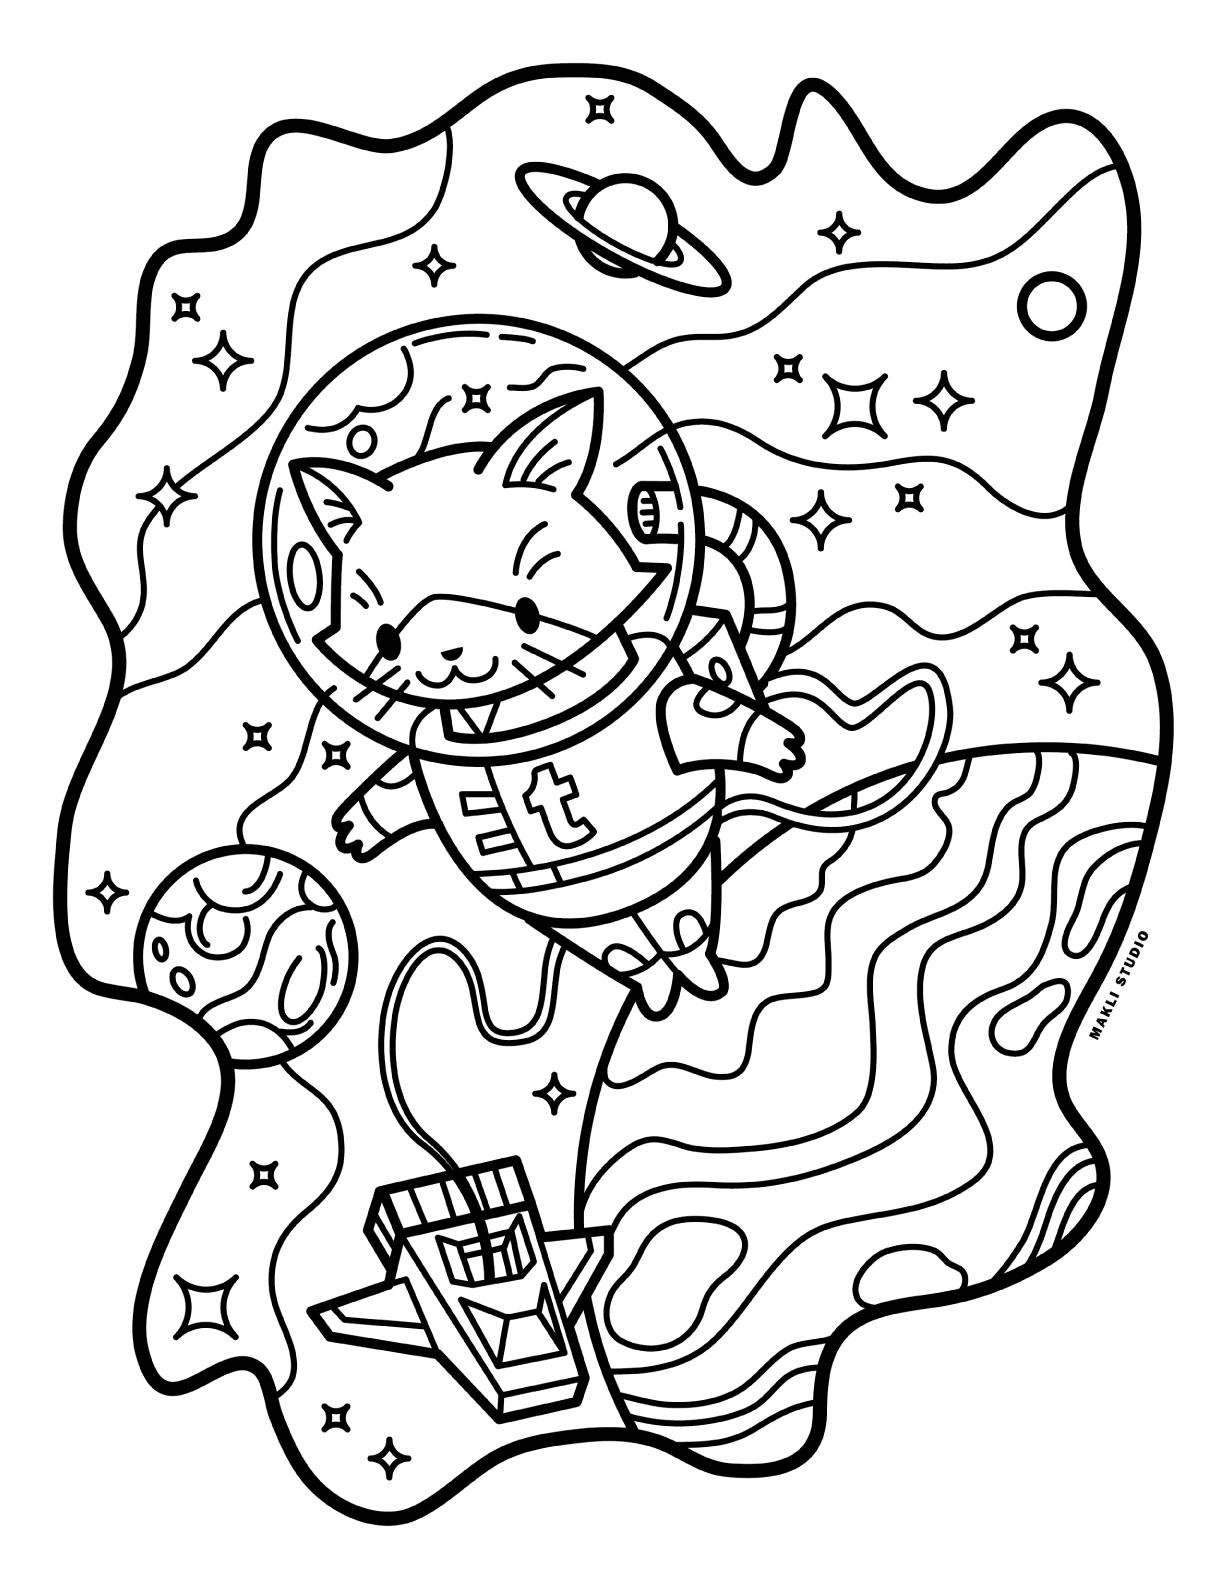 coloring pages tumblr coloring pages on tumblr tumblr coloring pages